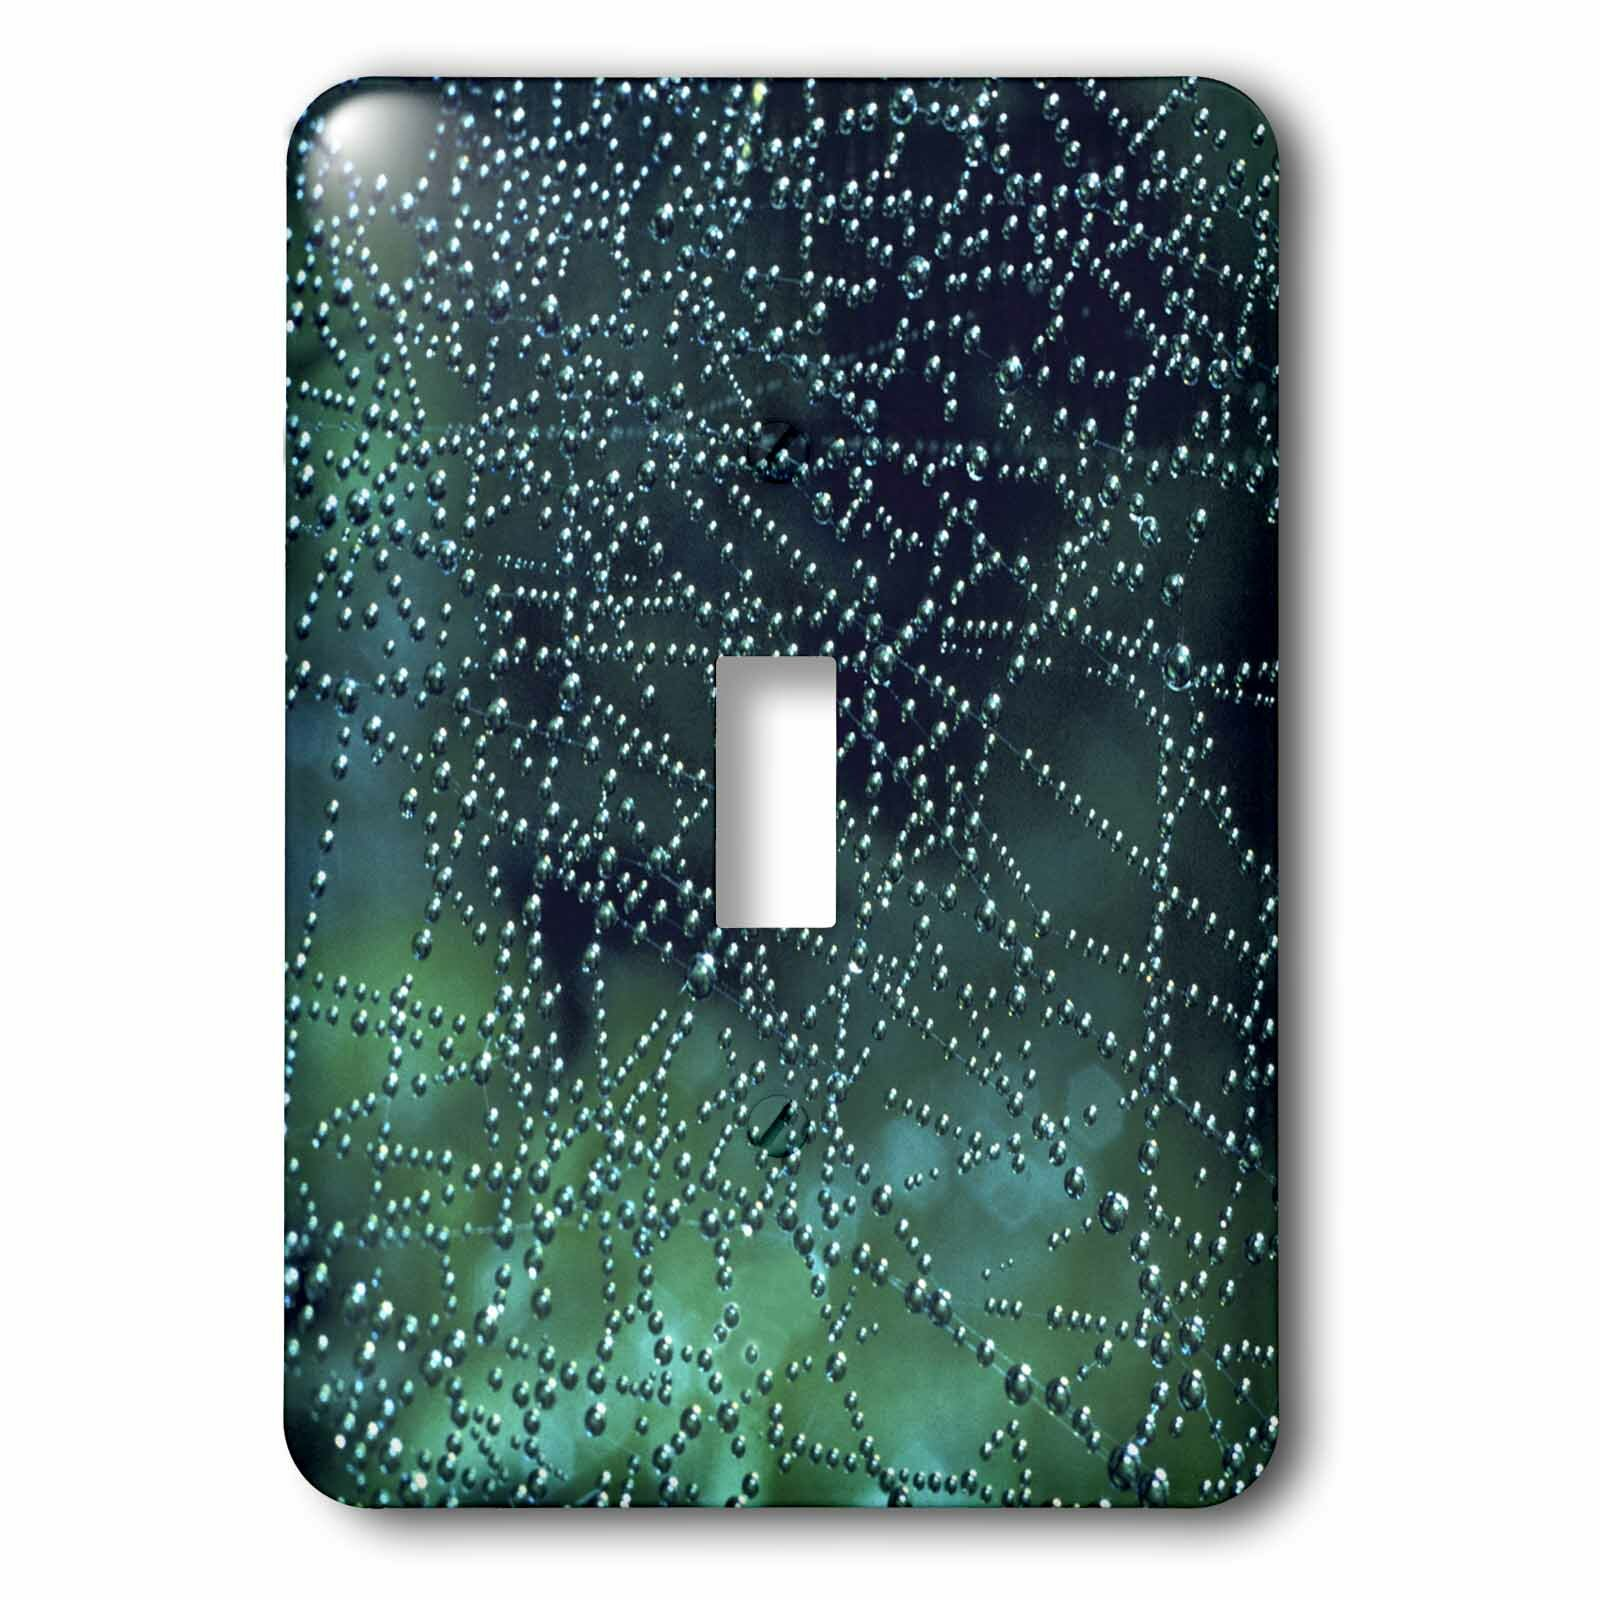 3drose Dew Drops On Spider Web 1 Gang Toggle Light Switch Wall Plate Wayfair